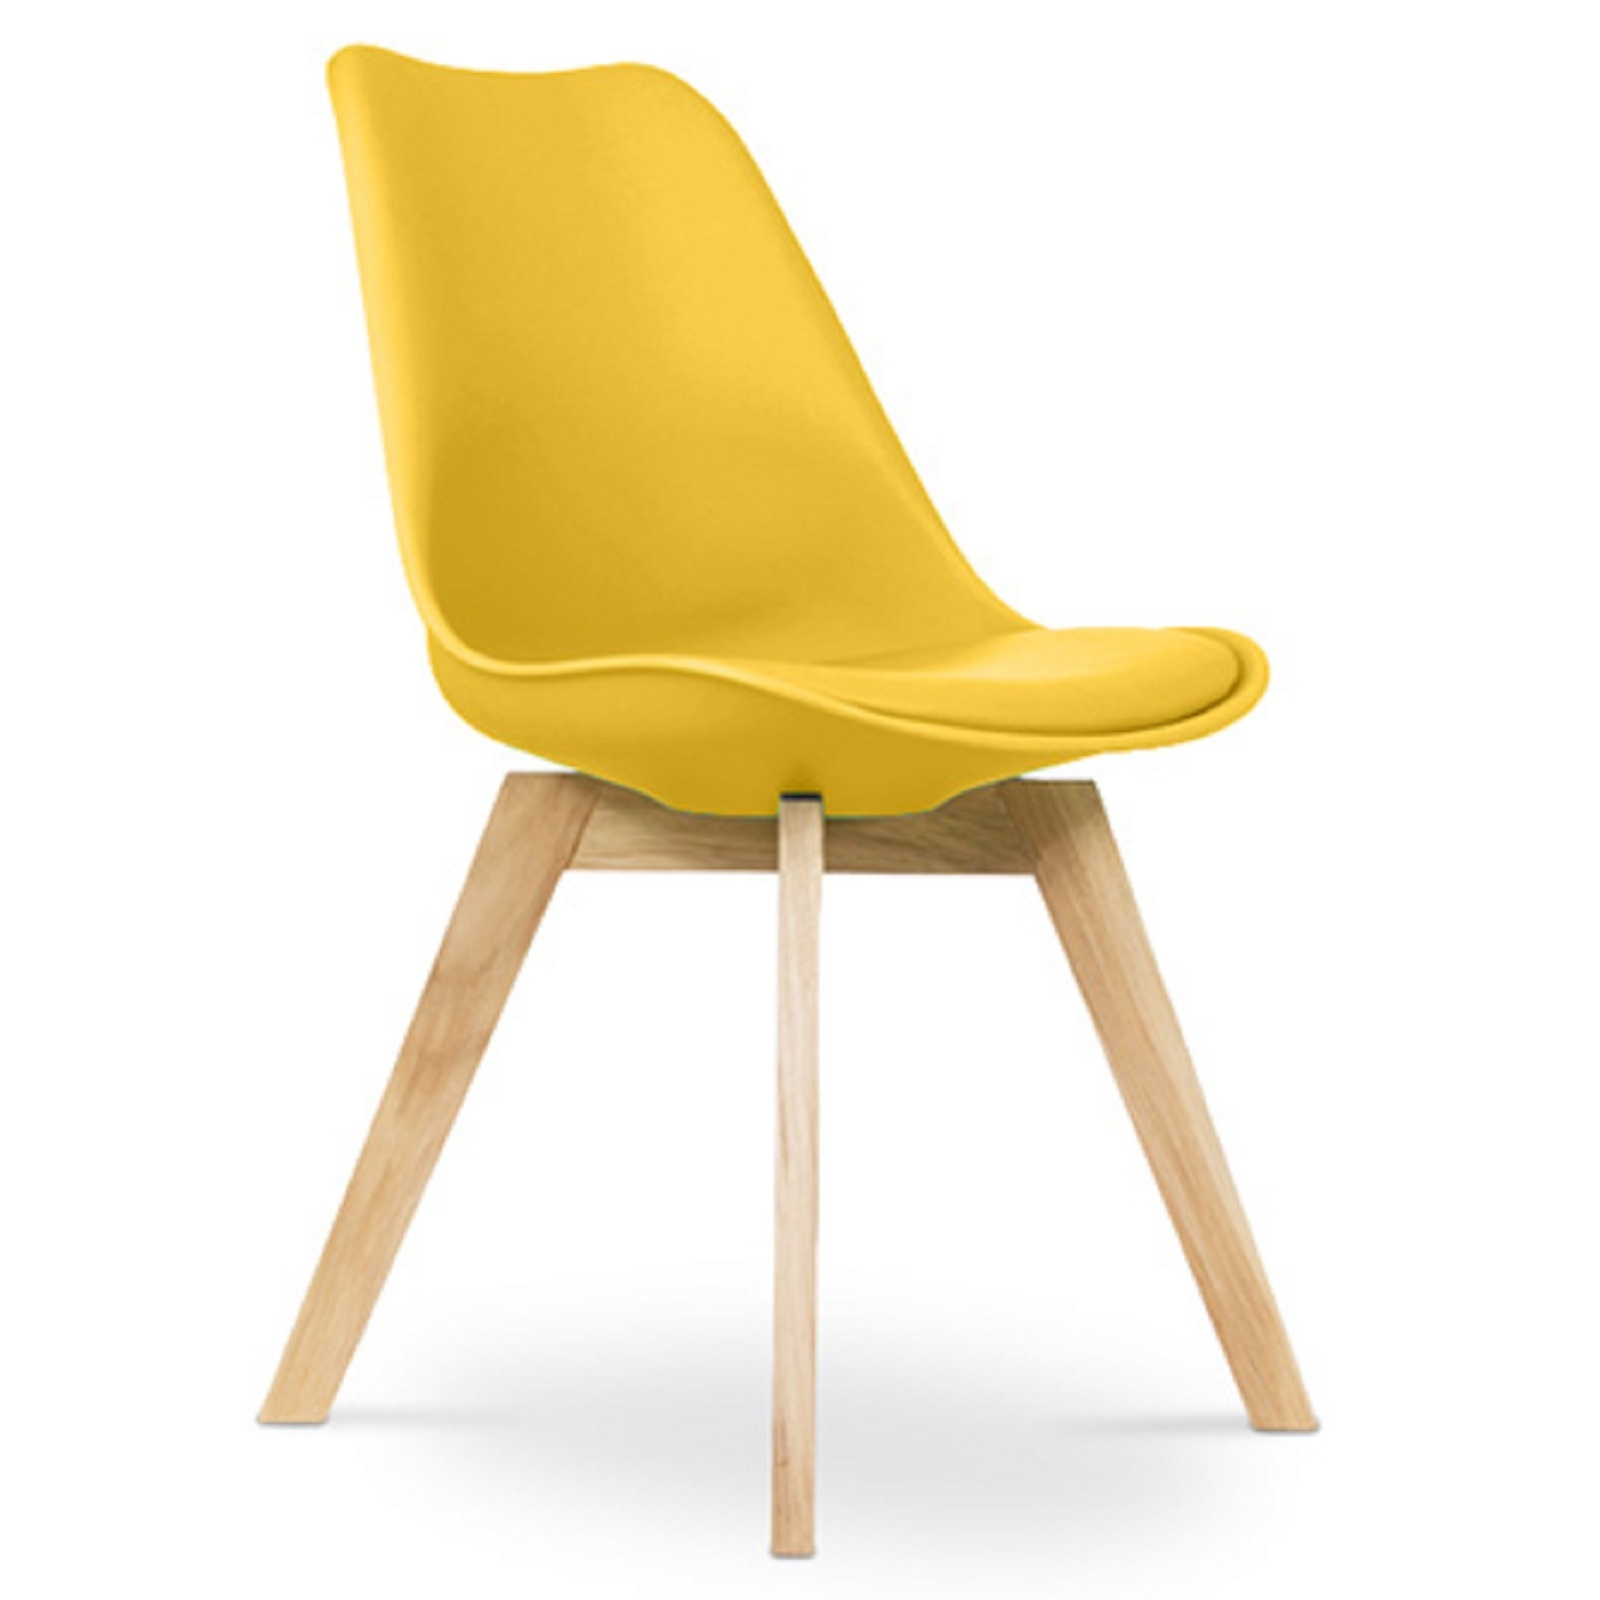 chaise scandinave avec coussin simili jaune inspir charles eames. Black Bedroom Furniture Sets. Home Design Ideas